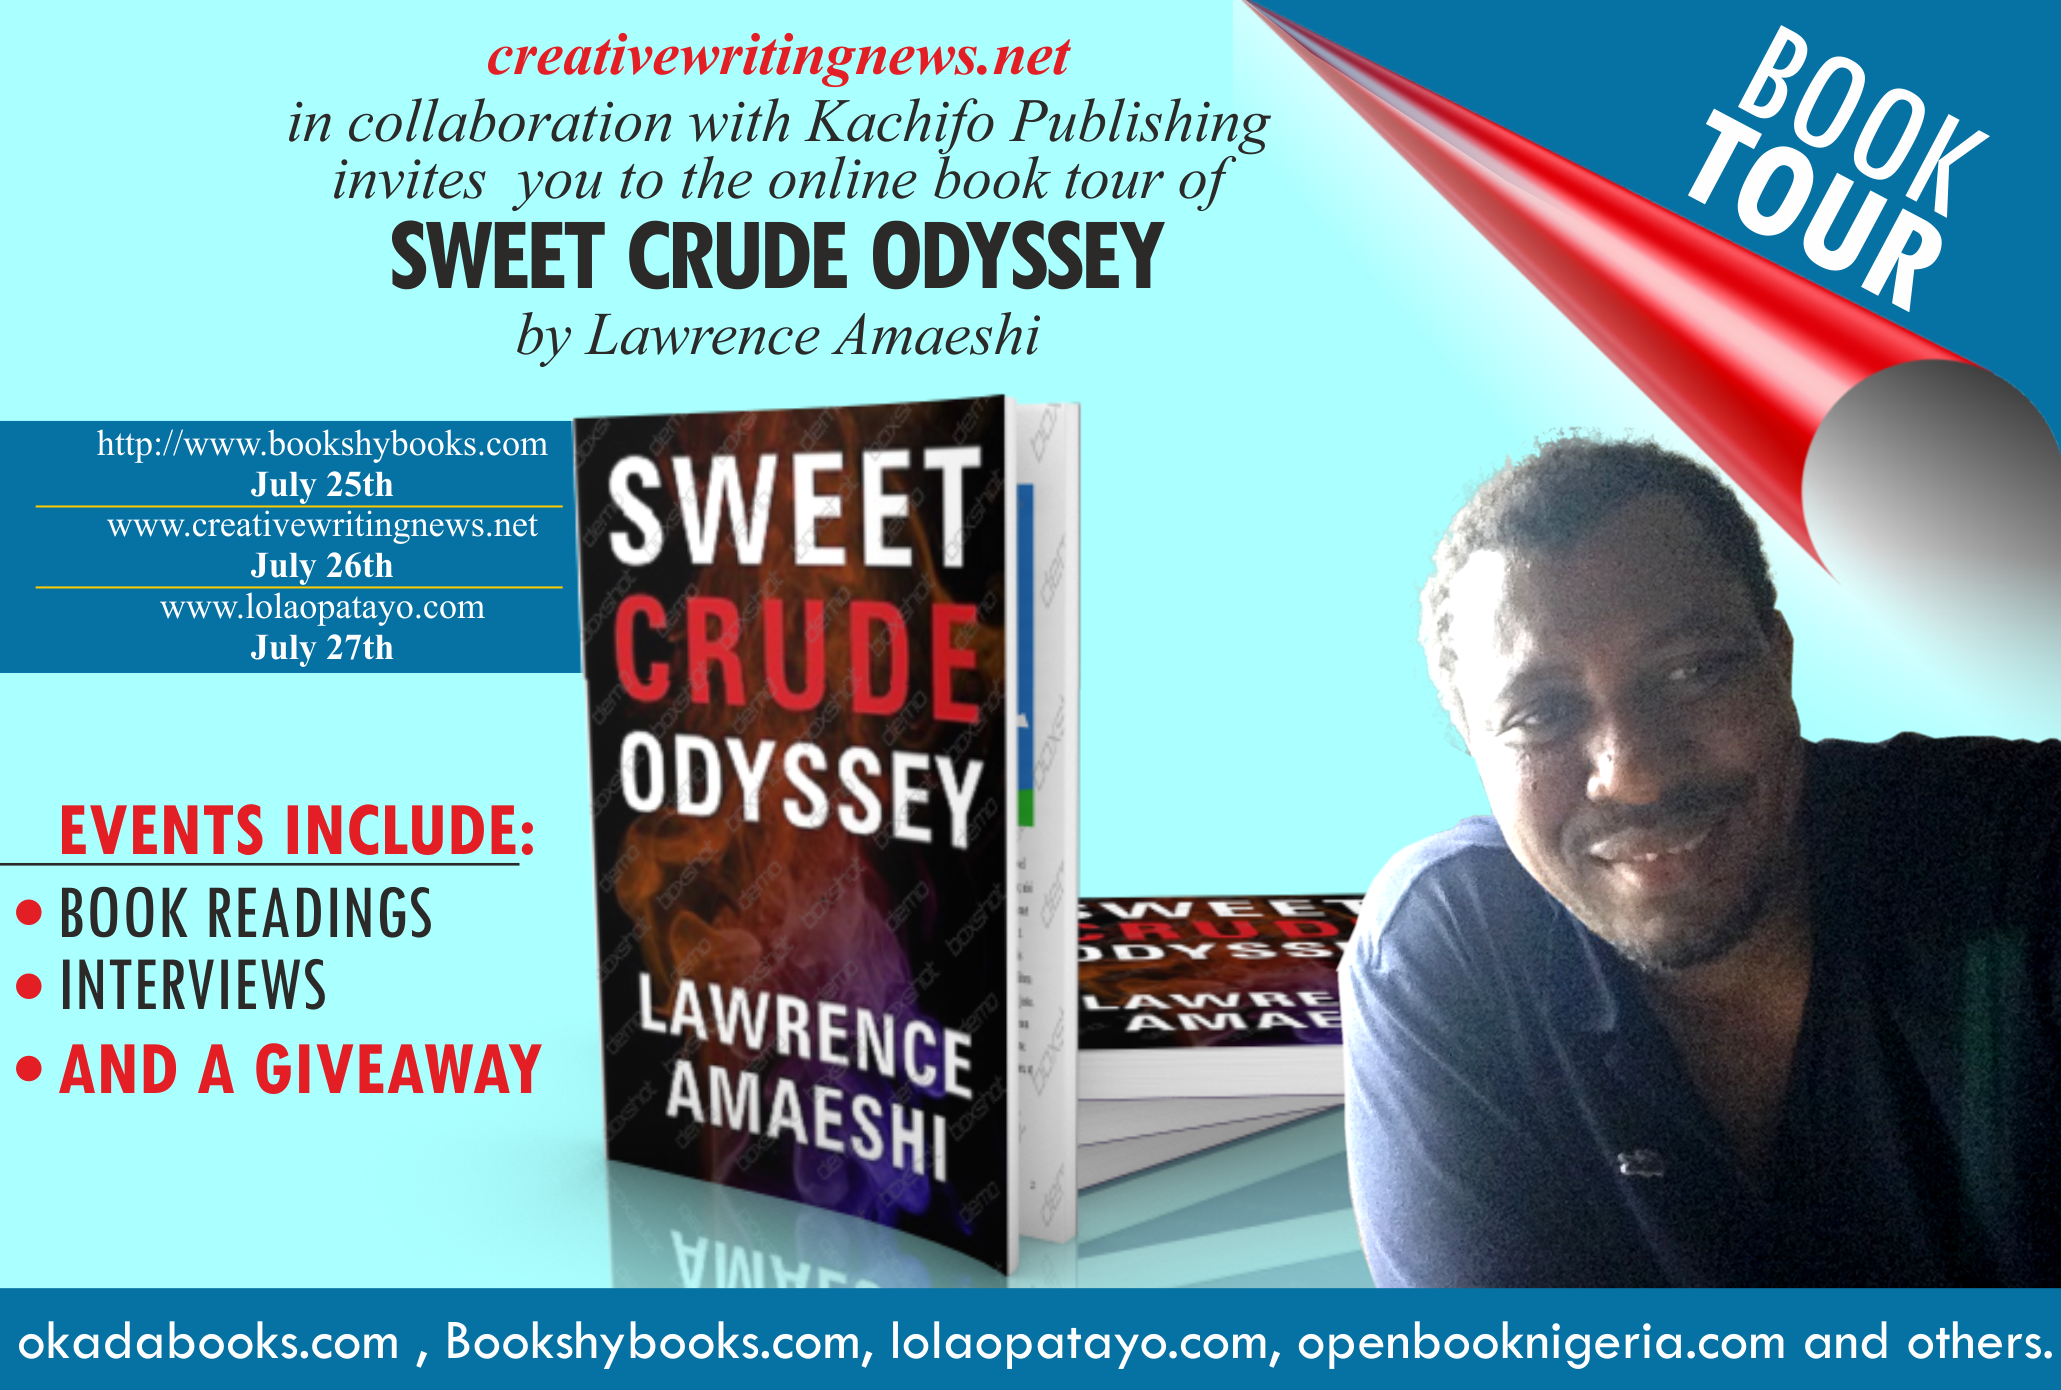 Book Tour: Lawrence Amaeshi's Sweet Crude Odyssey